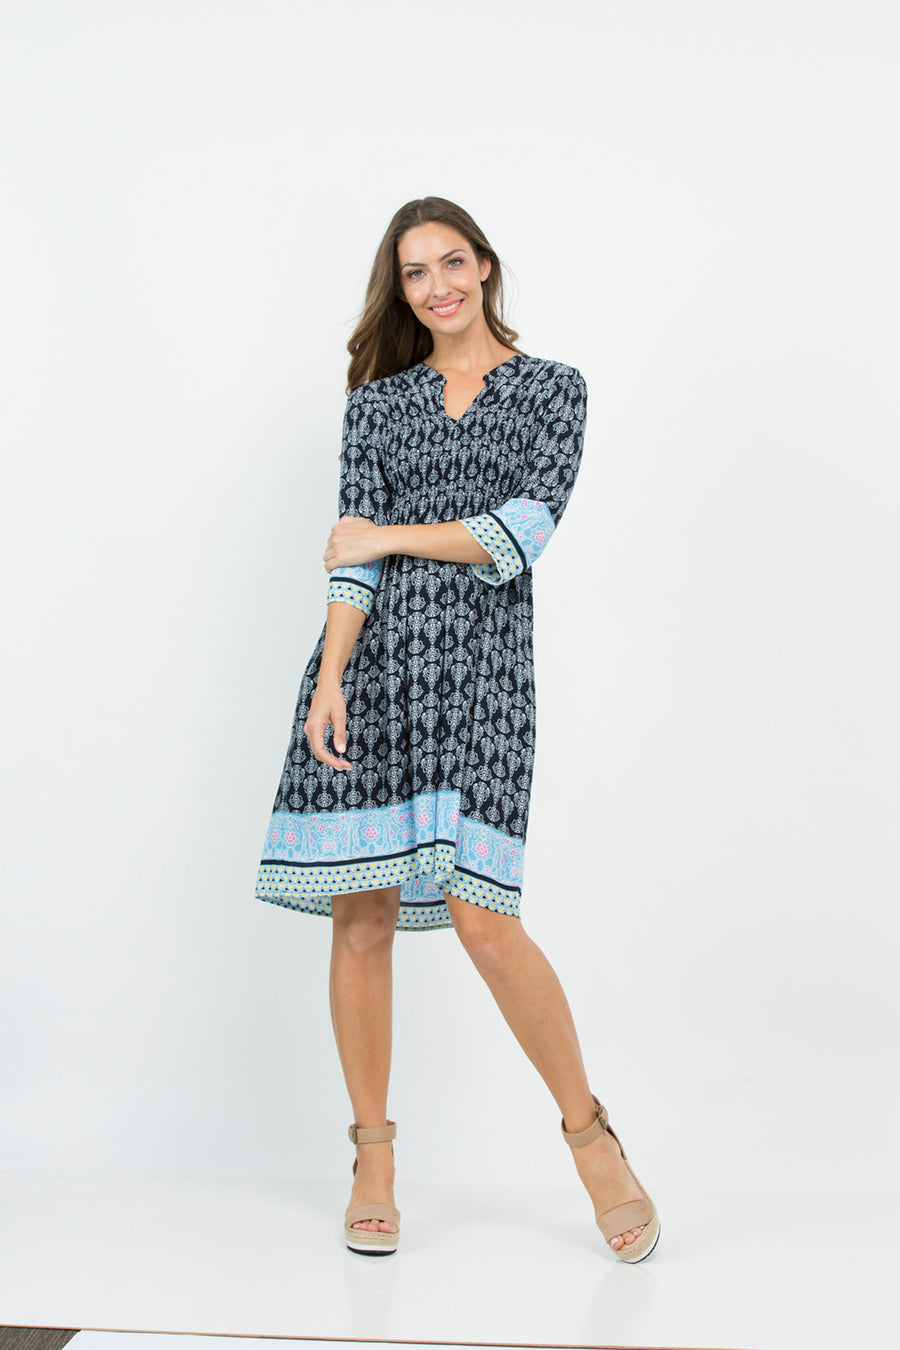 e01c0a26e8d Threadz  br  Summer Dress - Bliss in Inverloch Online   Retail ...